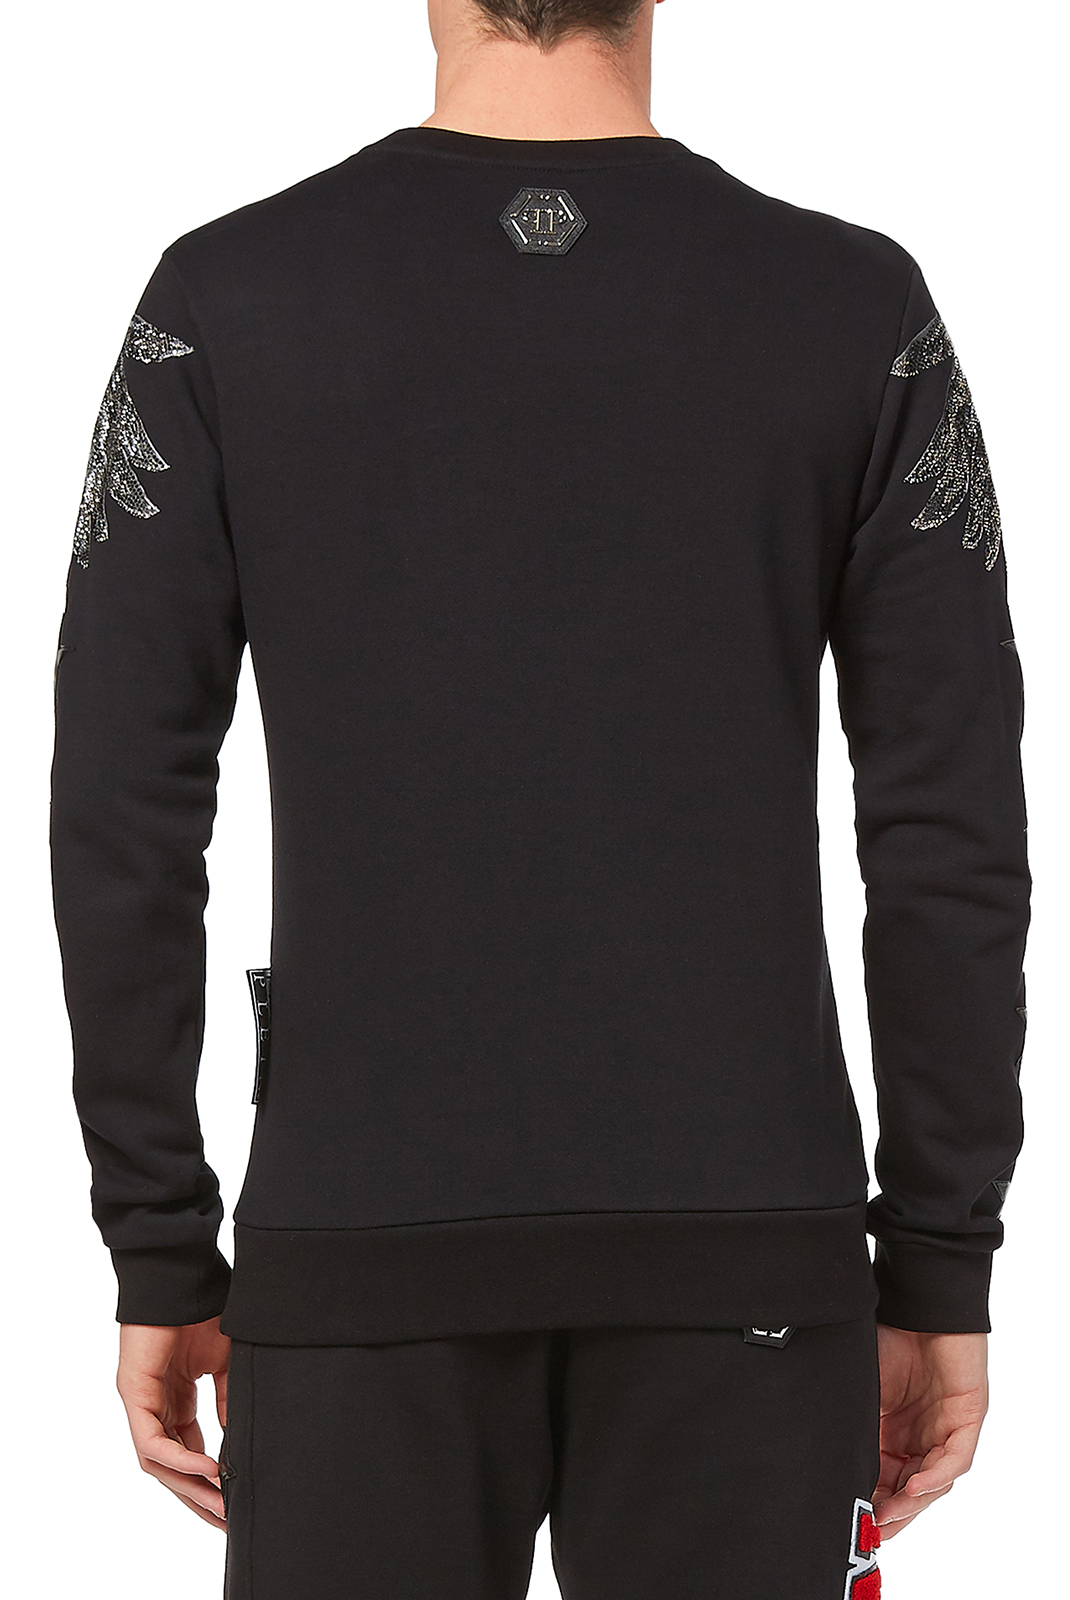 Sweatshirts  Philipp plein MJO0291 SONG 02 BLACK